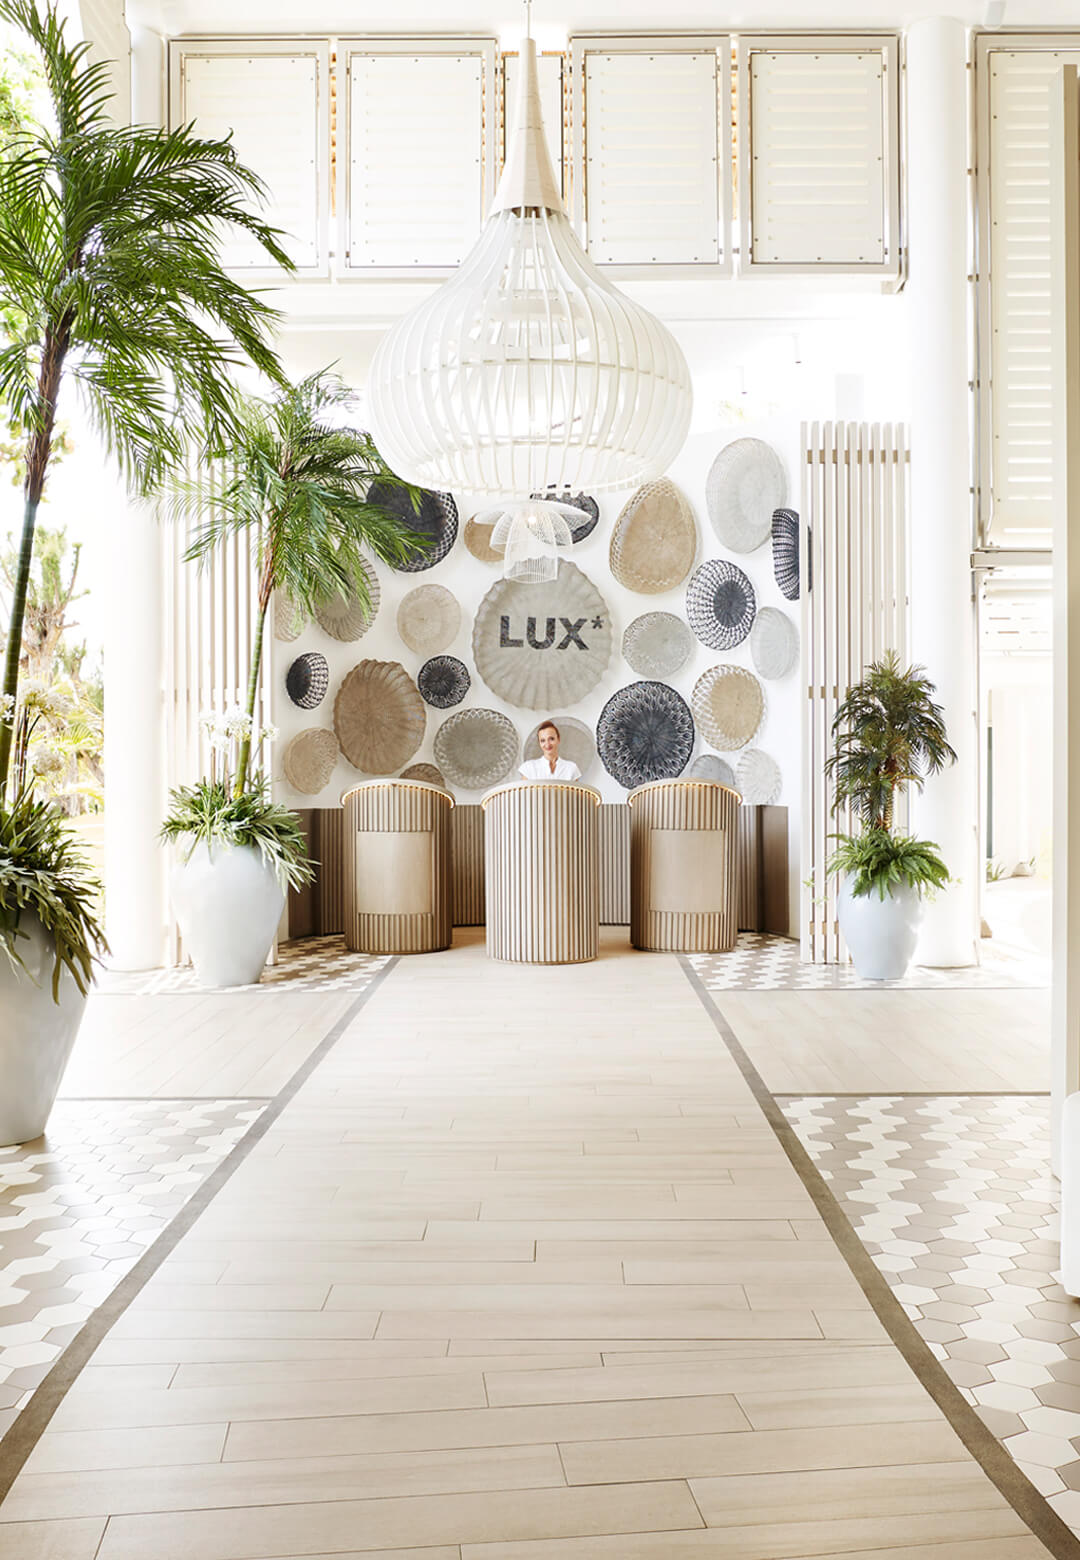 The guest reception area with its delicate cane detailing and light, contemporary ambience makes a stylish holiday statement.